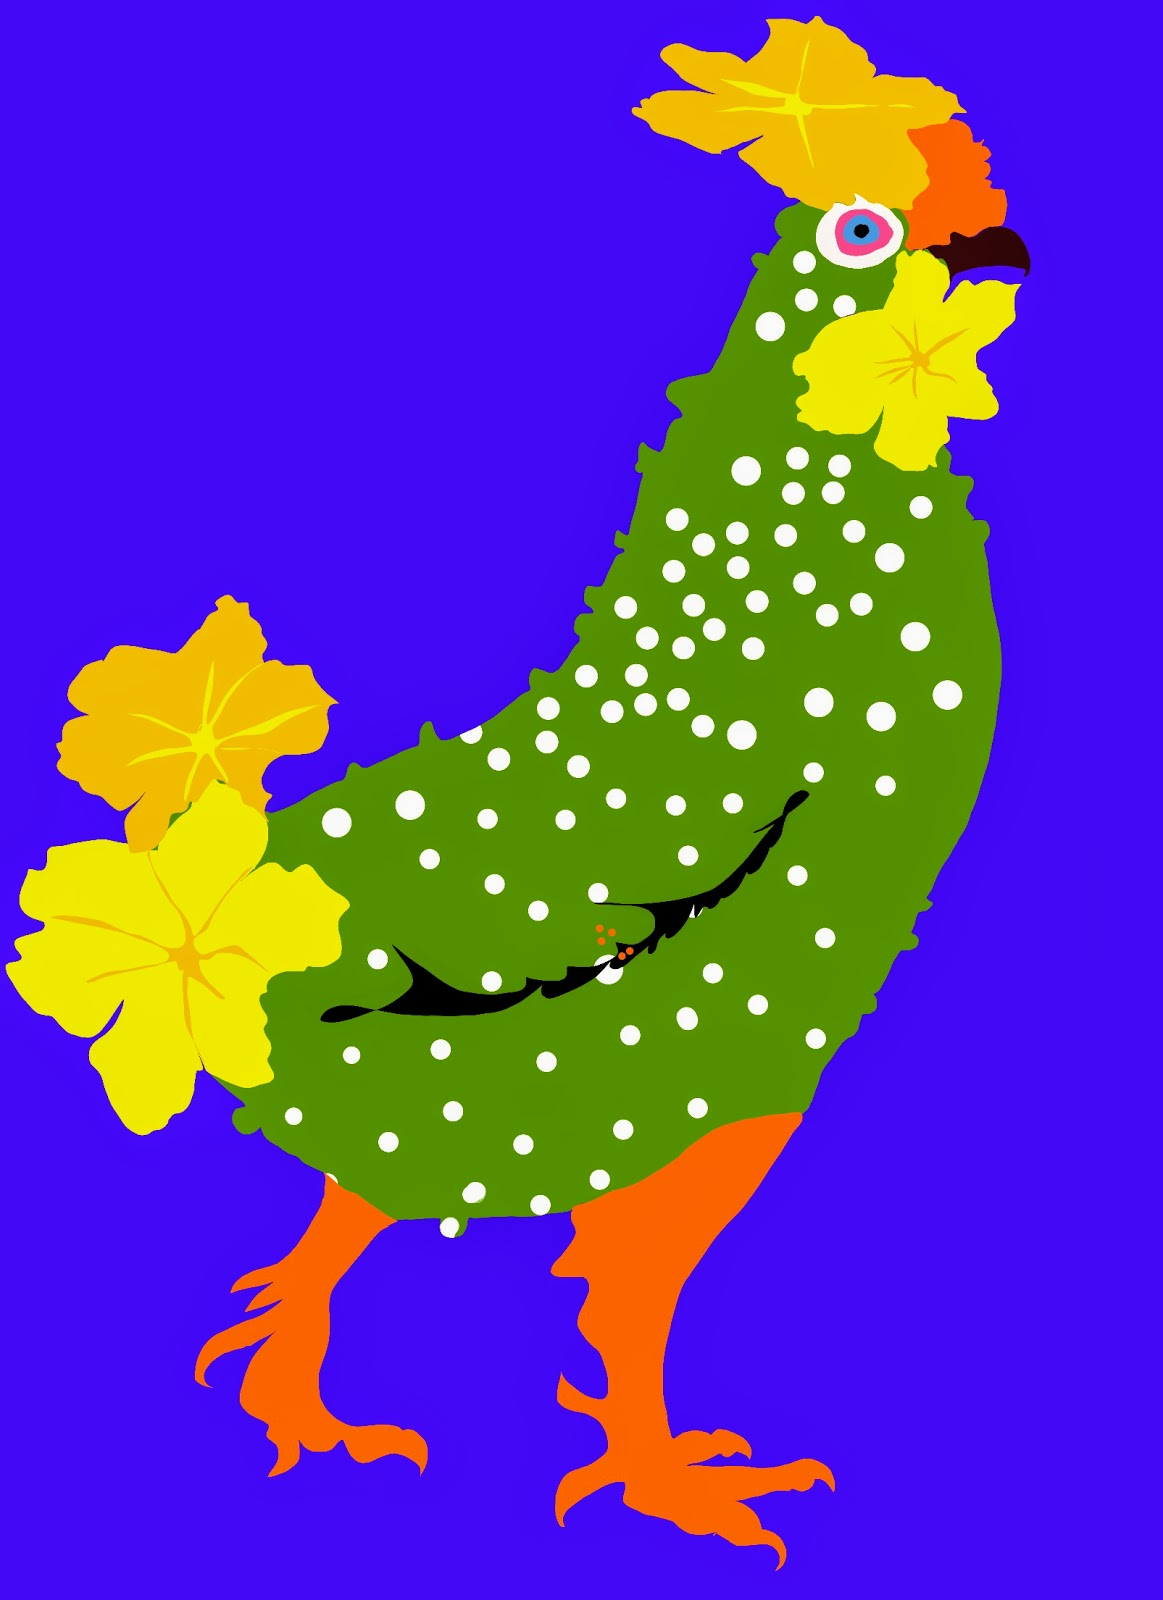 Cucumber and chicken chromosplice illustration.